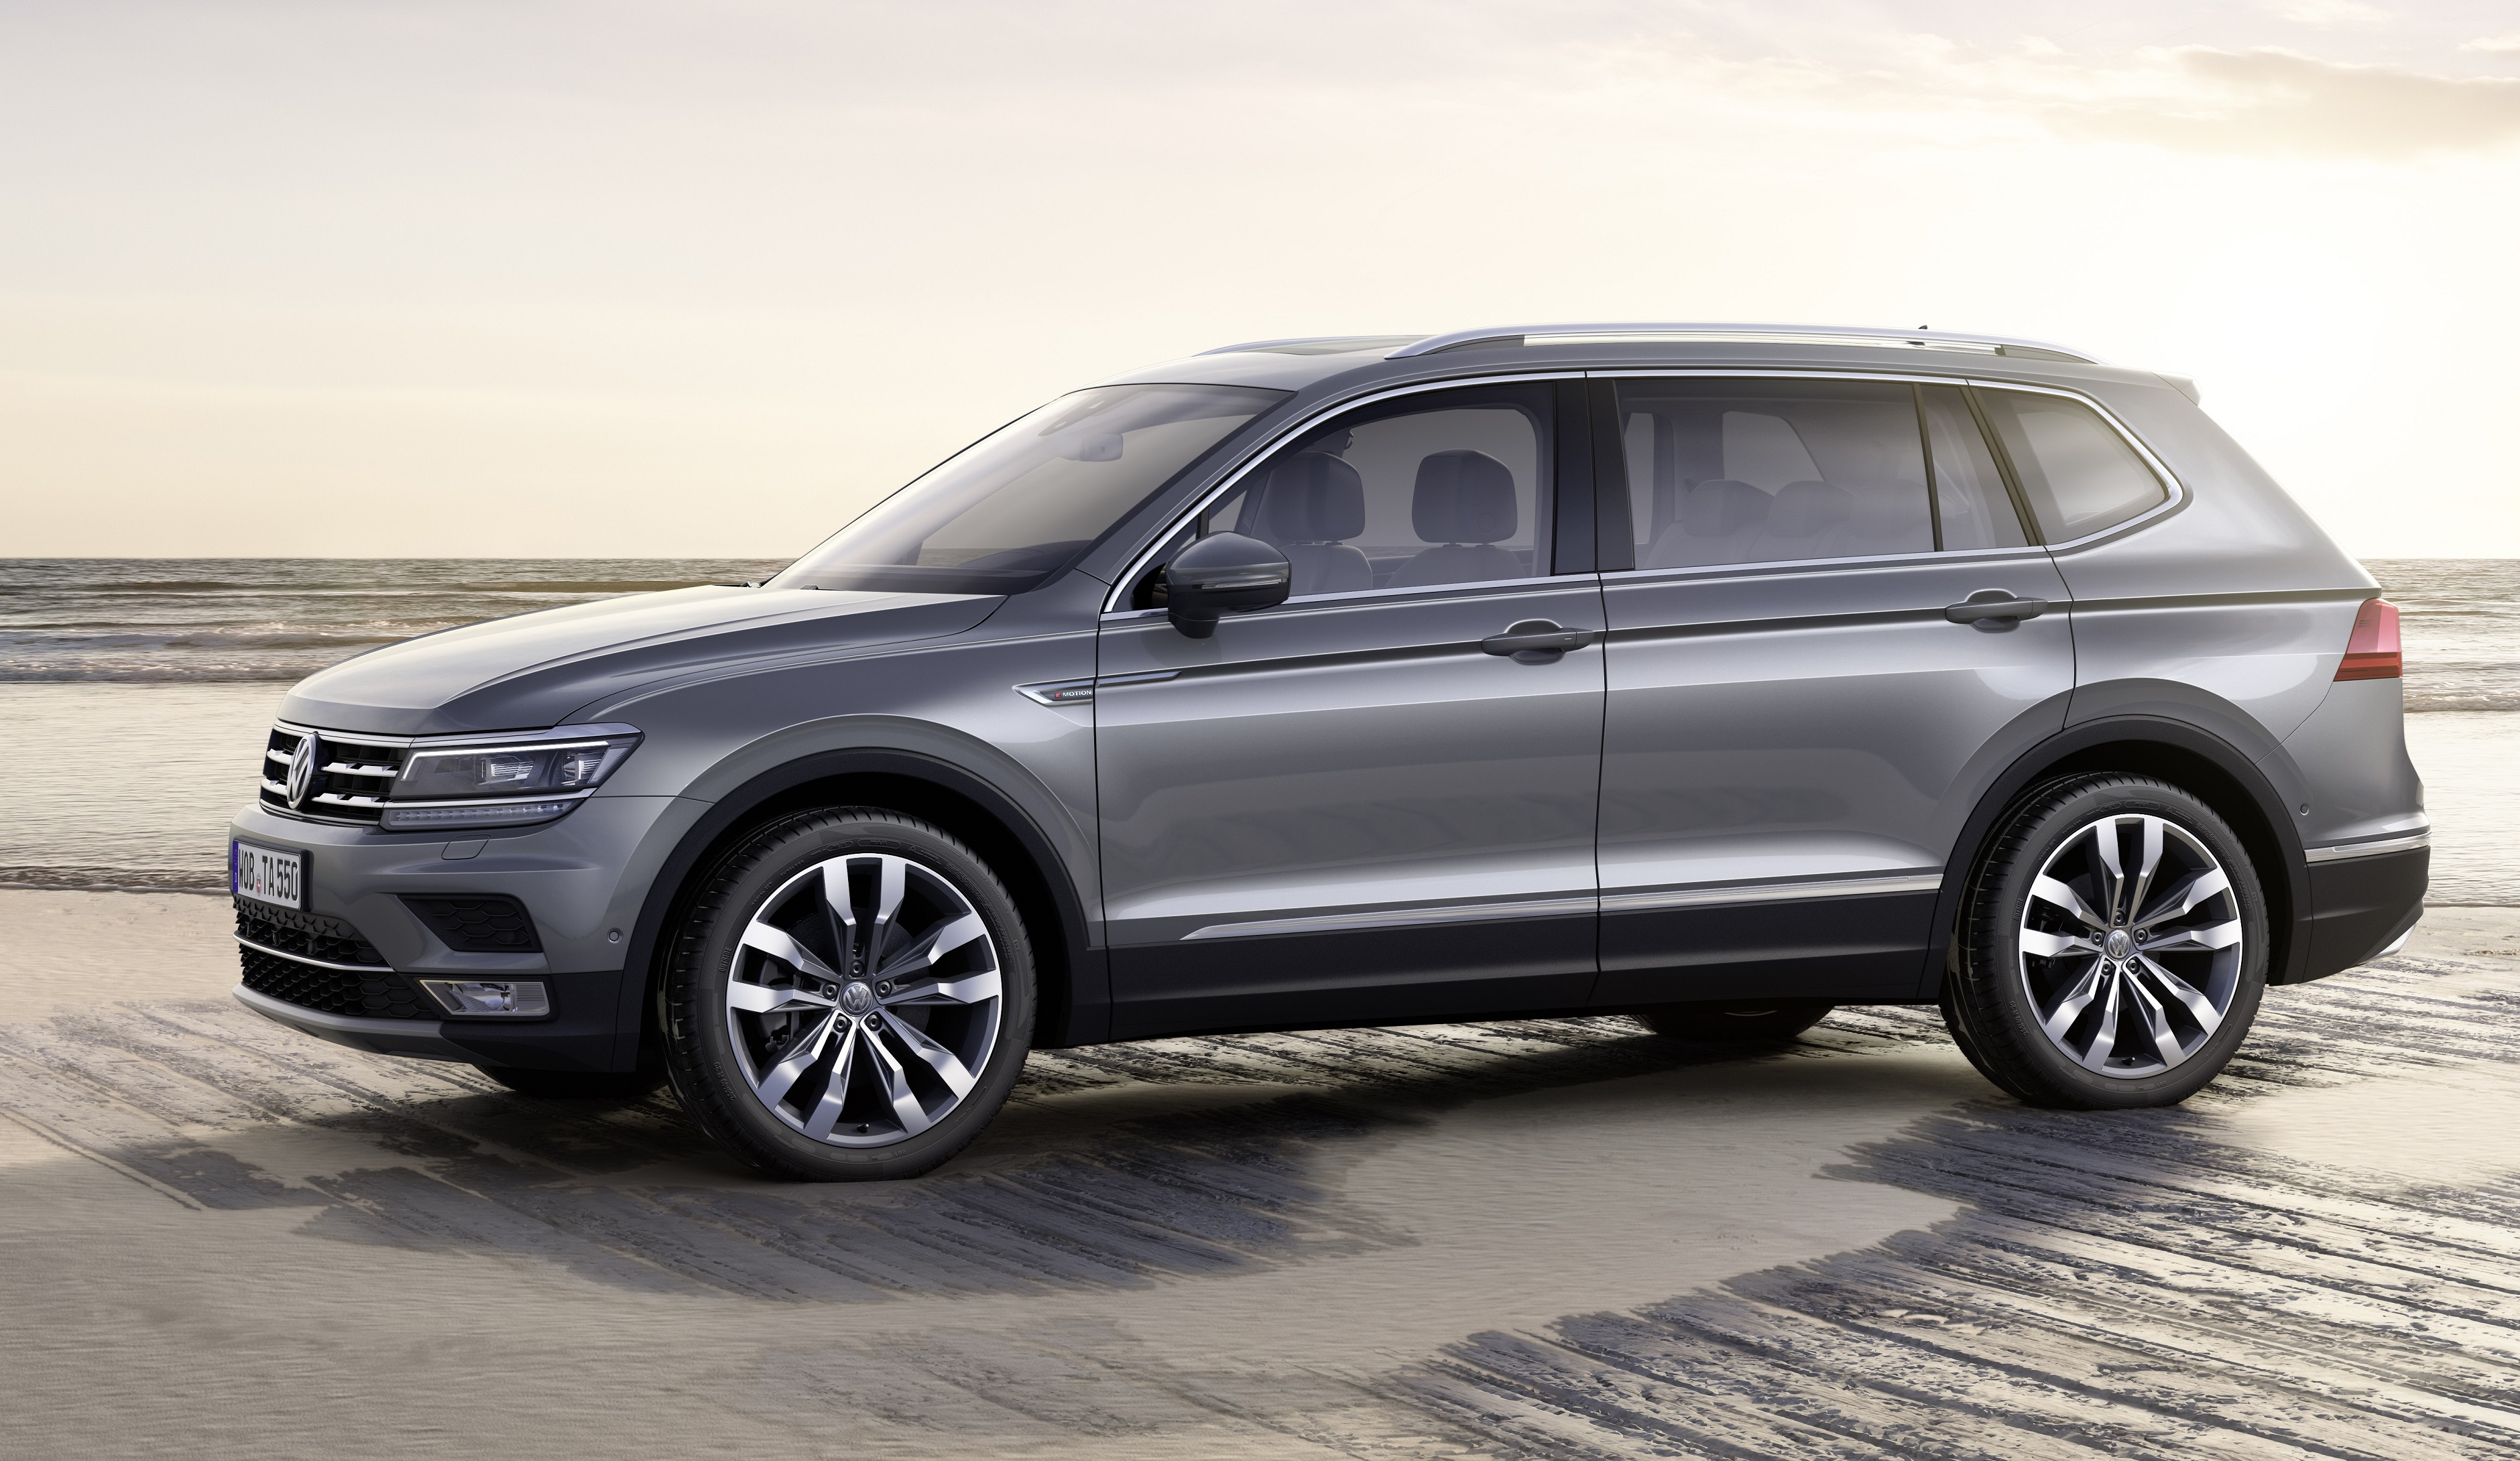 The mainstream VW Tiguan is a finalist for World Car of the Year.